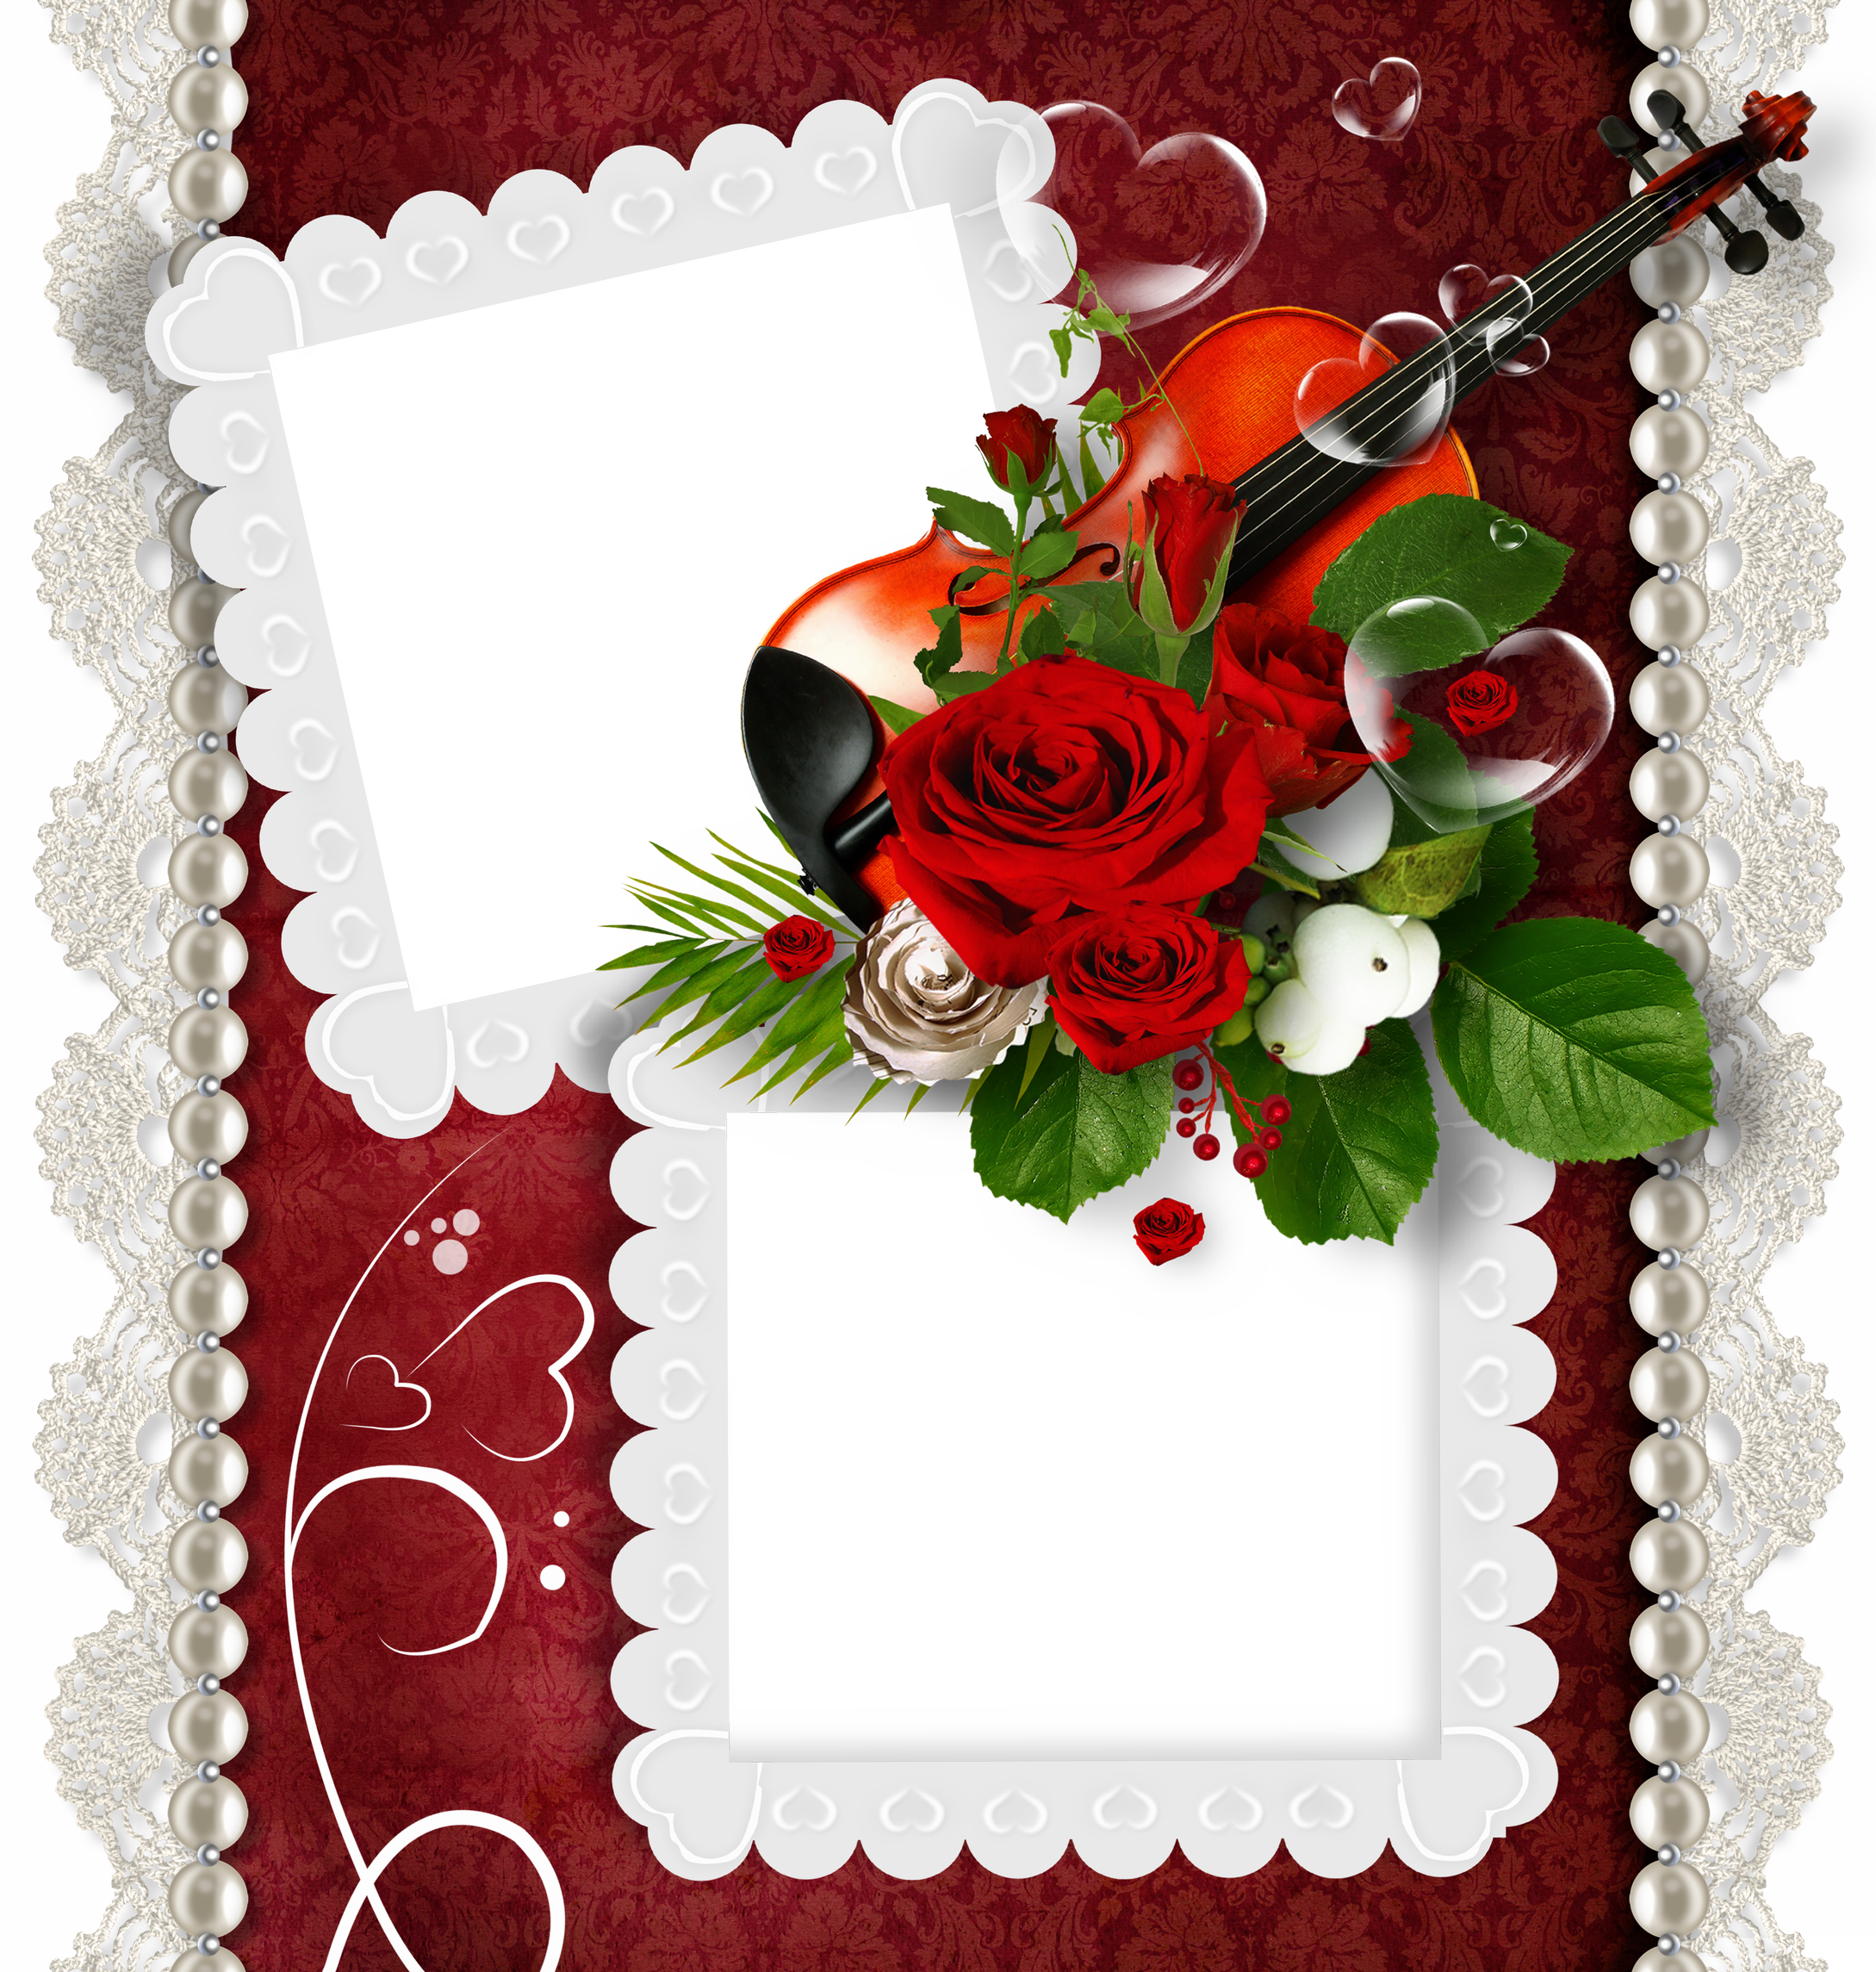 Romantic Double Transparent PNG Frame with Violin and Rose.